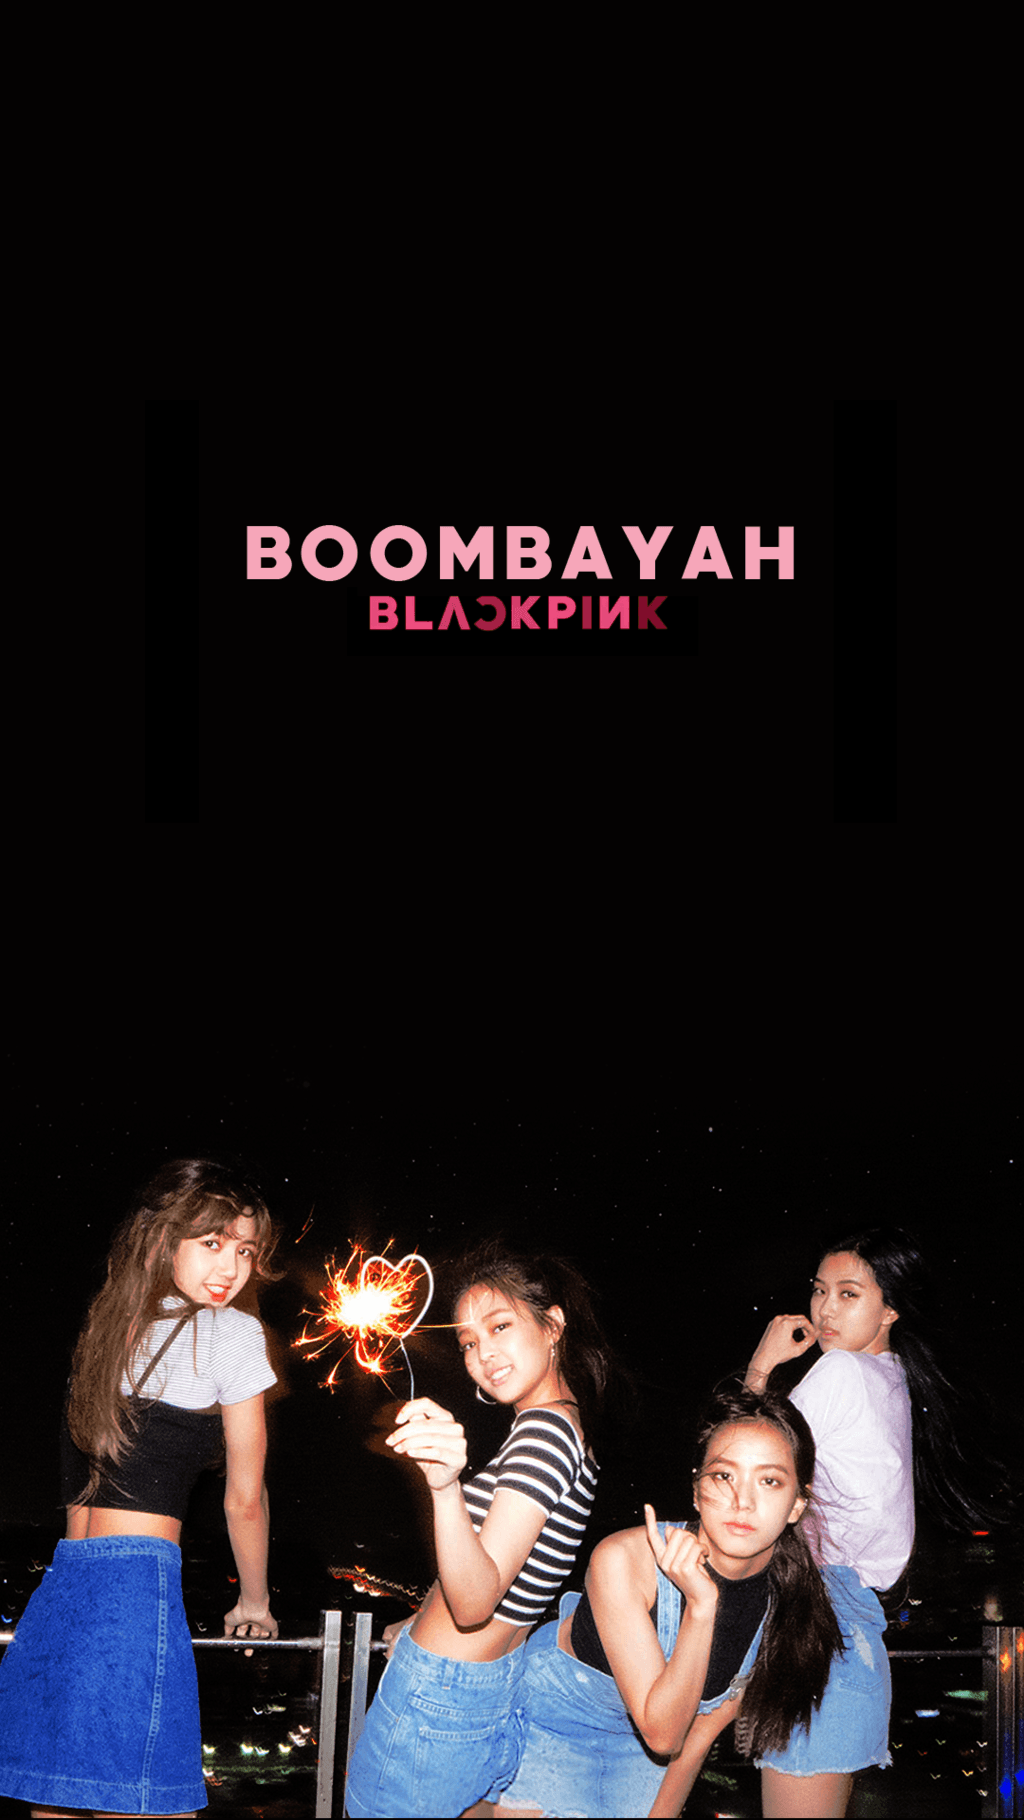 Colouring Your Phone And Desktop With Blackpinks Logo And